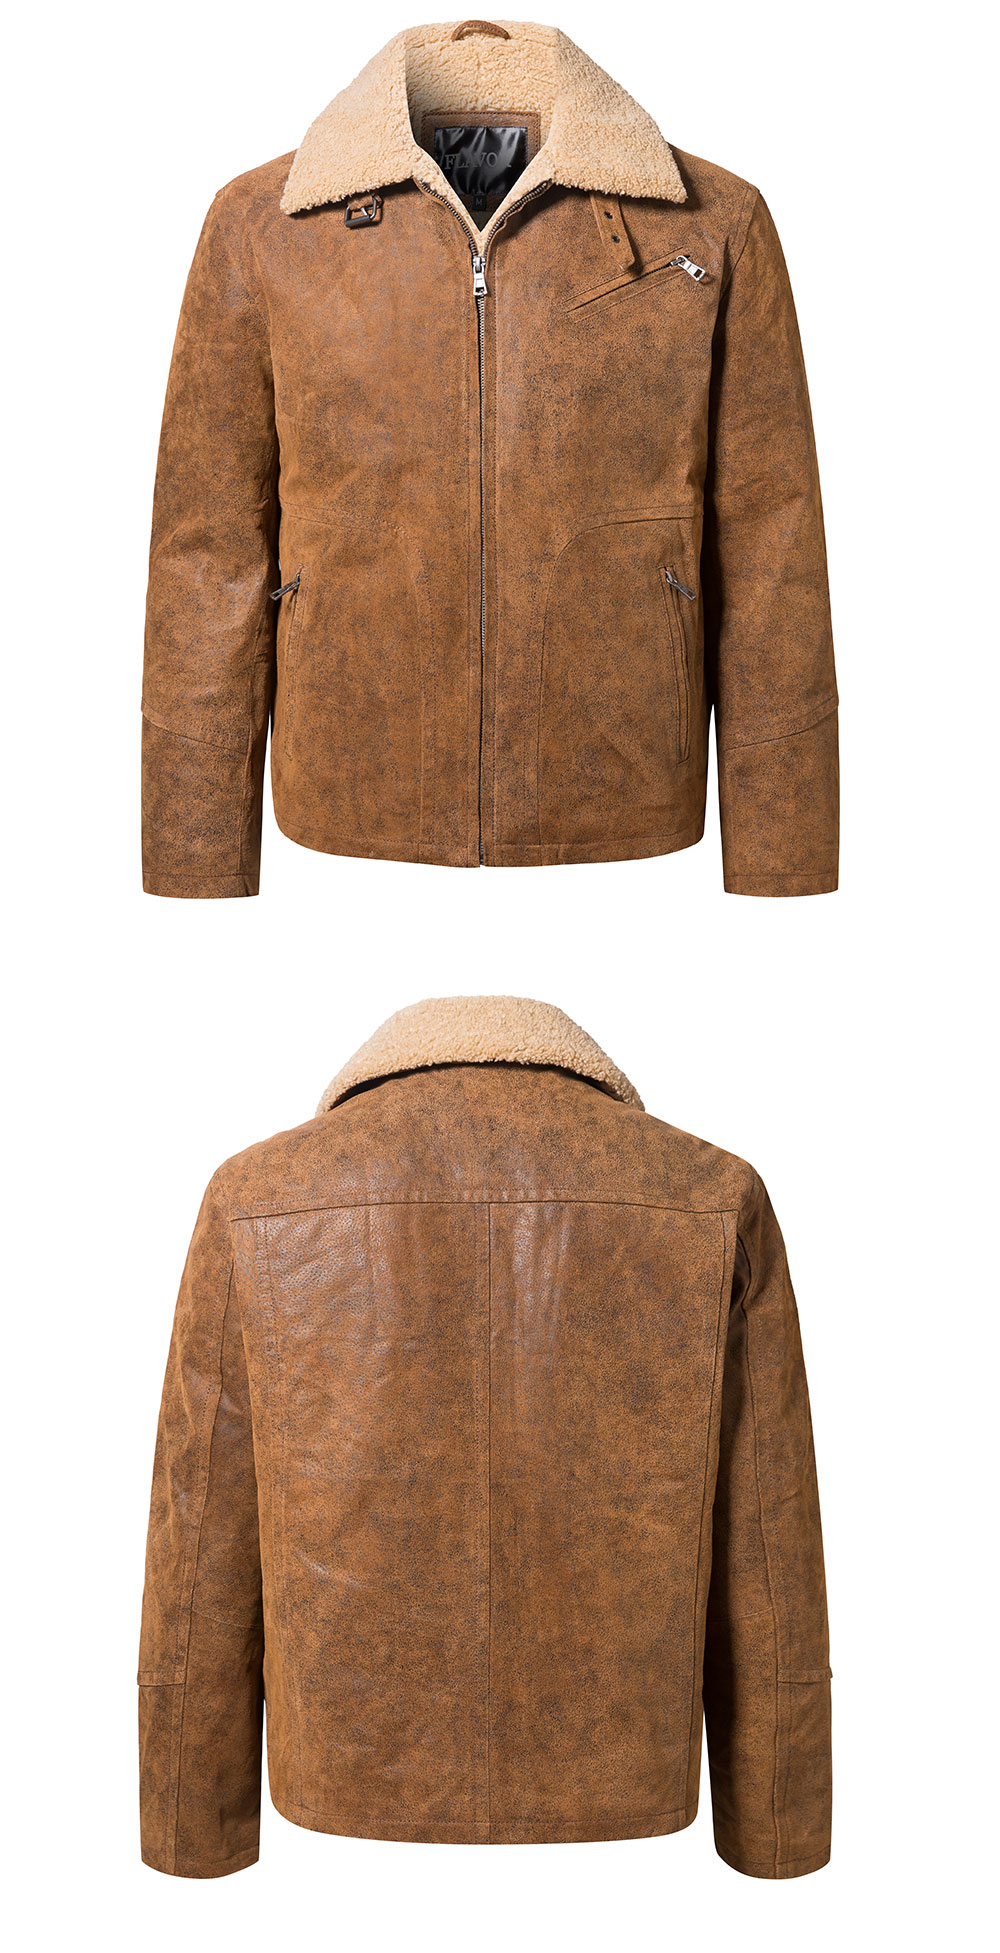 Ha8e412d36b8d472bbb2e6bd04308118fS FLAVOR New Men's Genuine Leather Motorcycle Jacket Pigskin with Faux Shearling Real Leather Jacket Bomber Coat Men